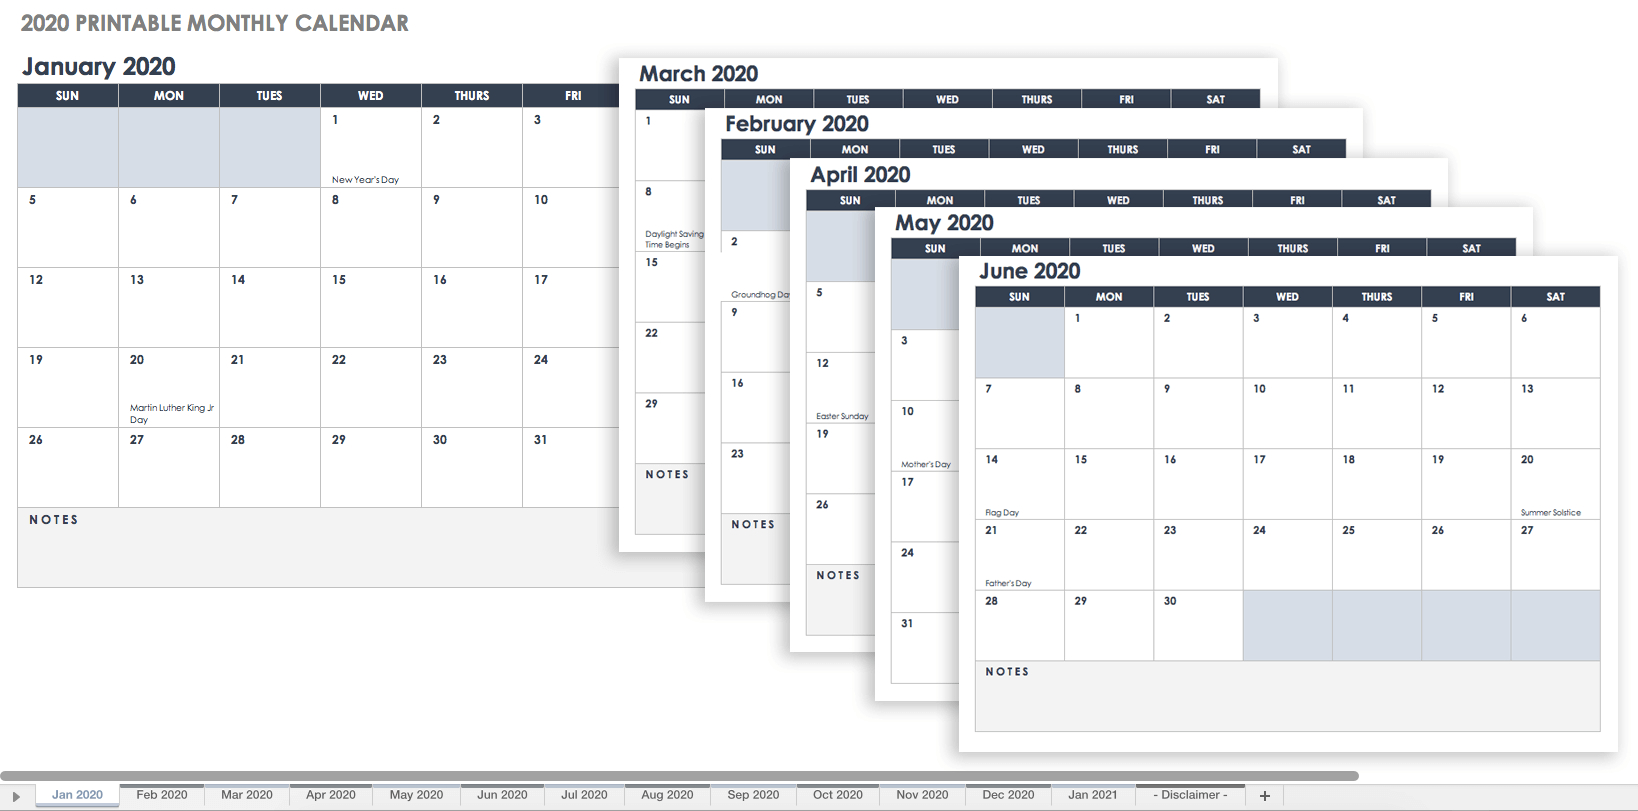 15 Free Monthly Calendar Templates | Smartsheet with regard to 2020 Printable Calendar With Large Squares